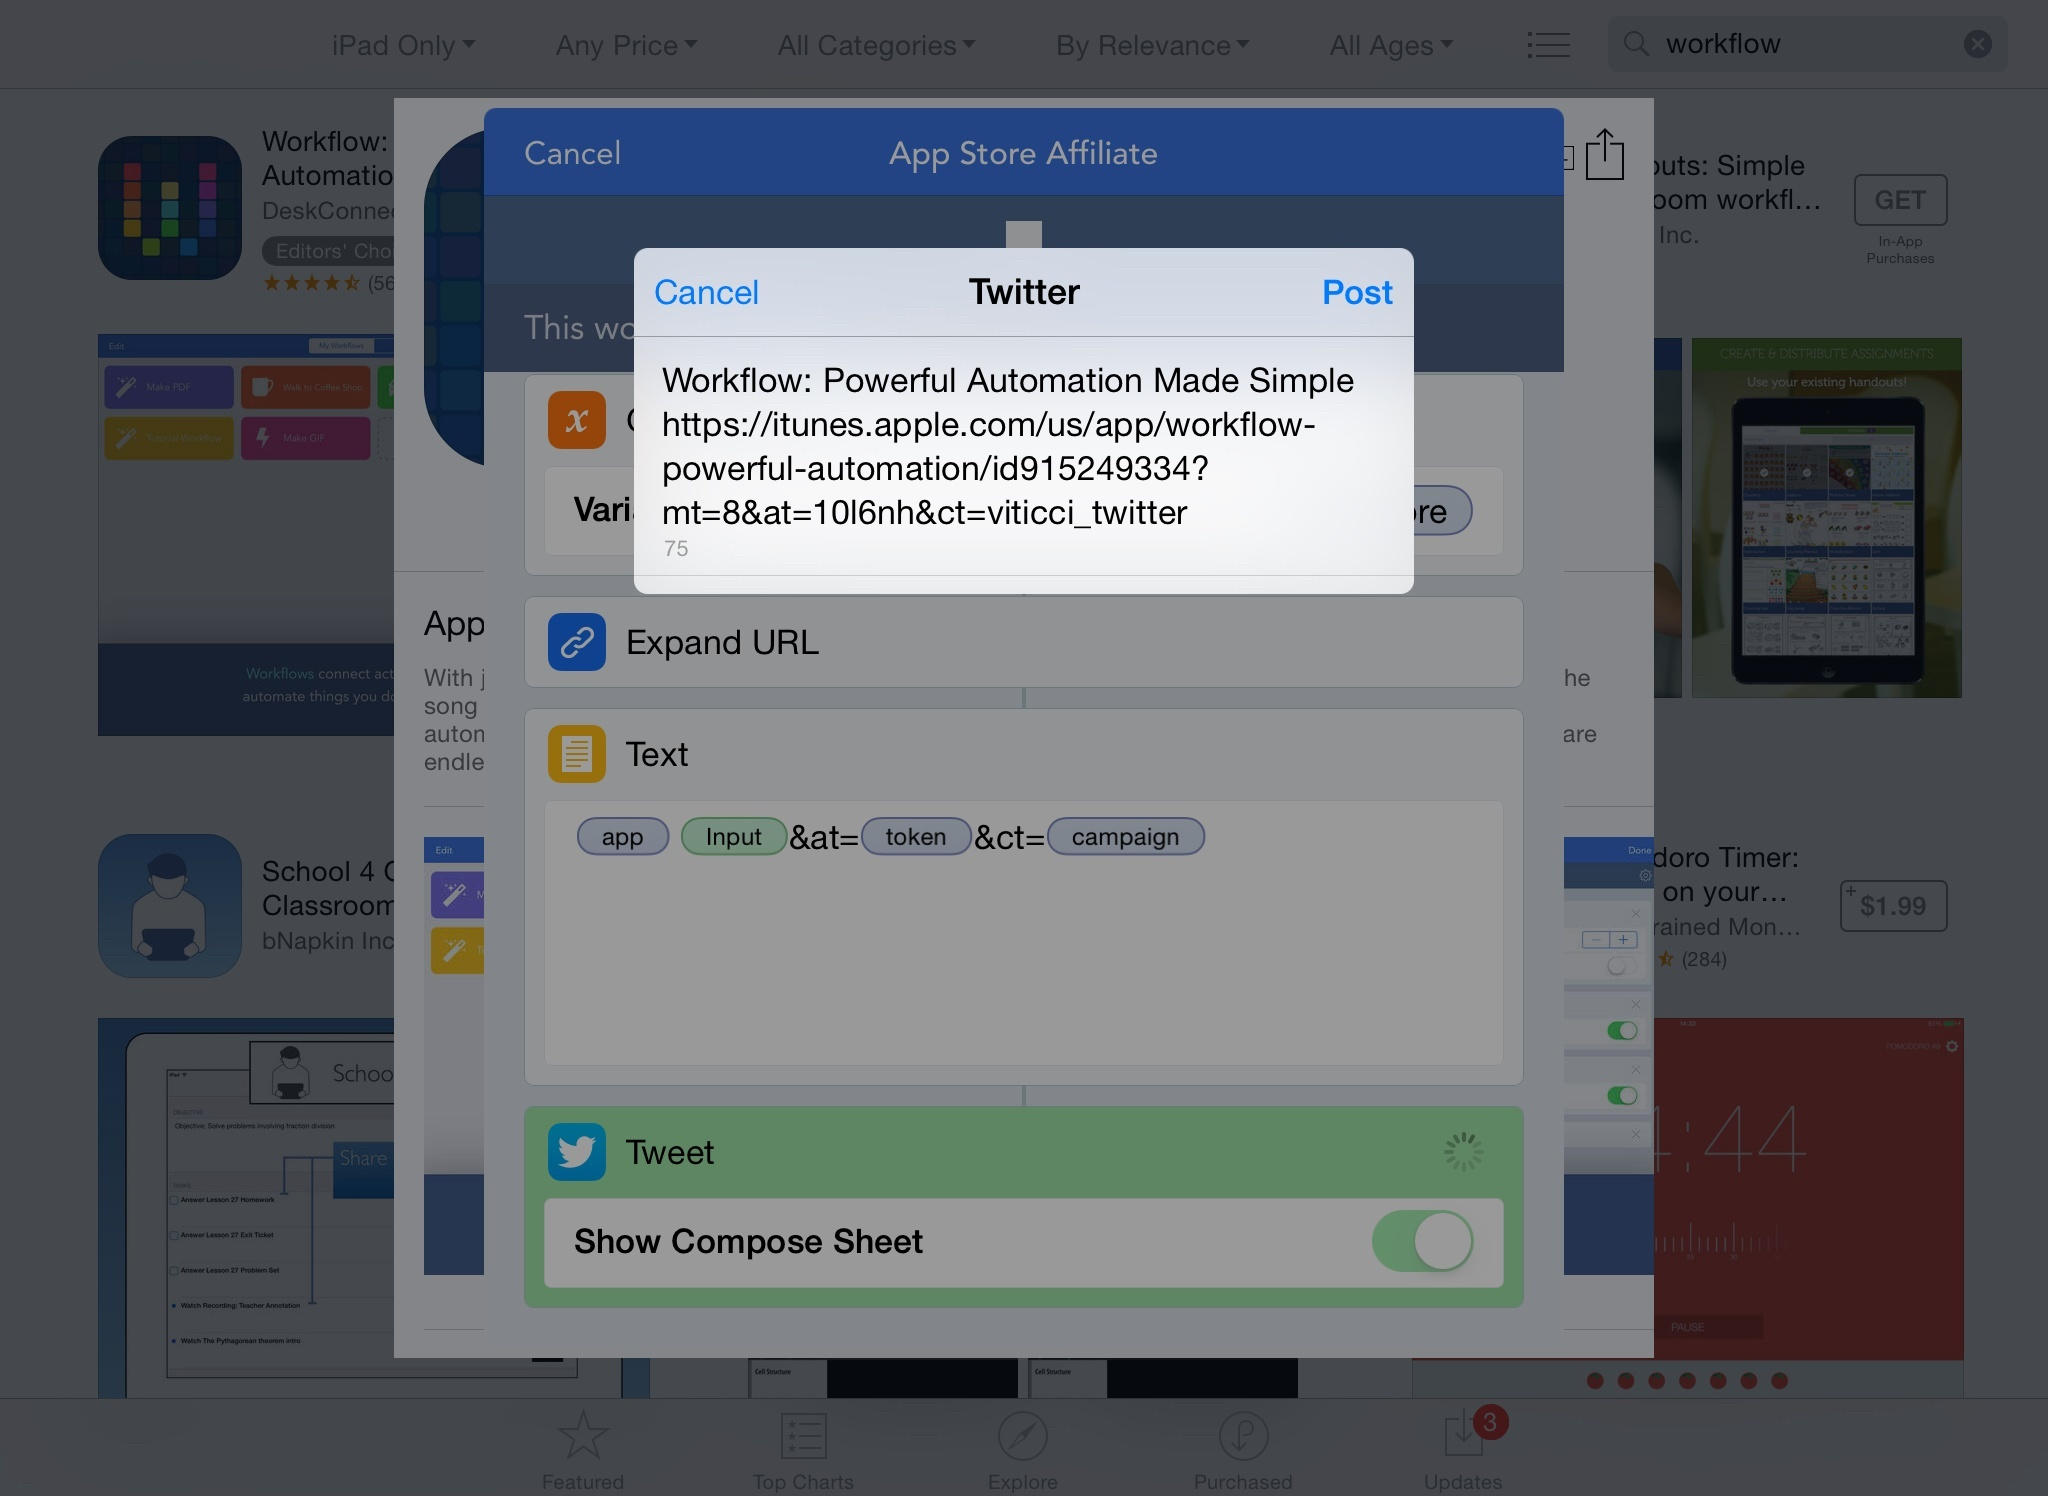 Tweeting an affiliate link from the App Store with Workflow.